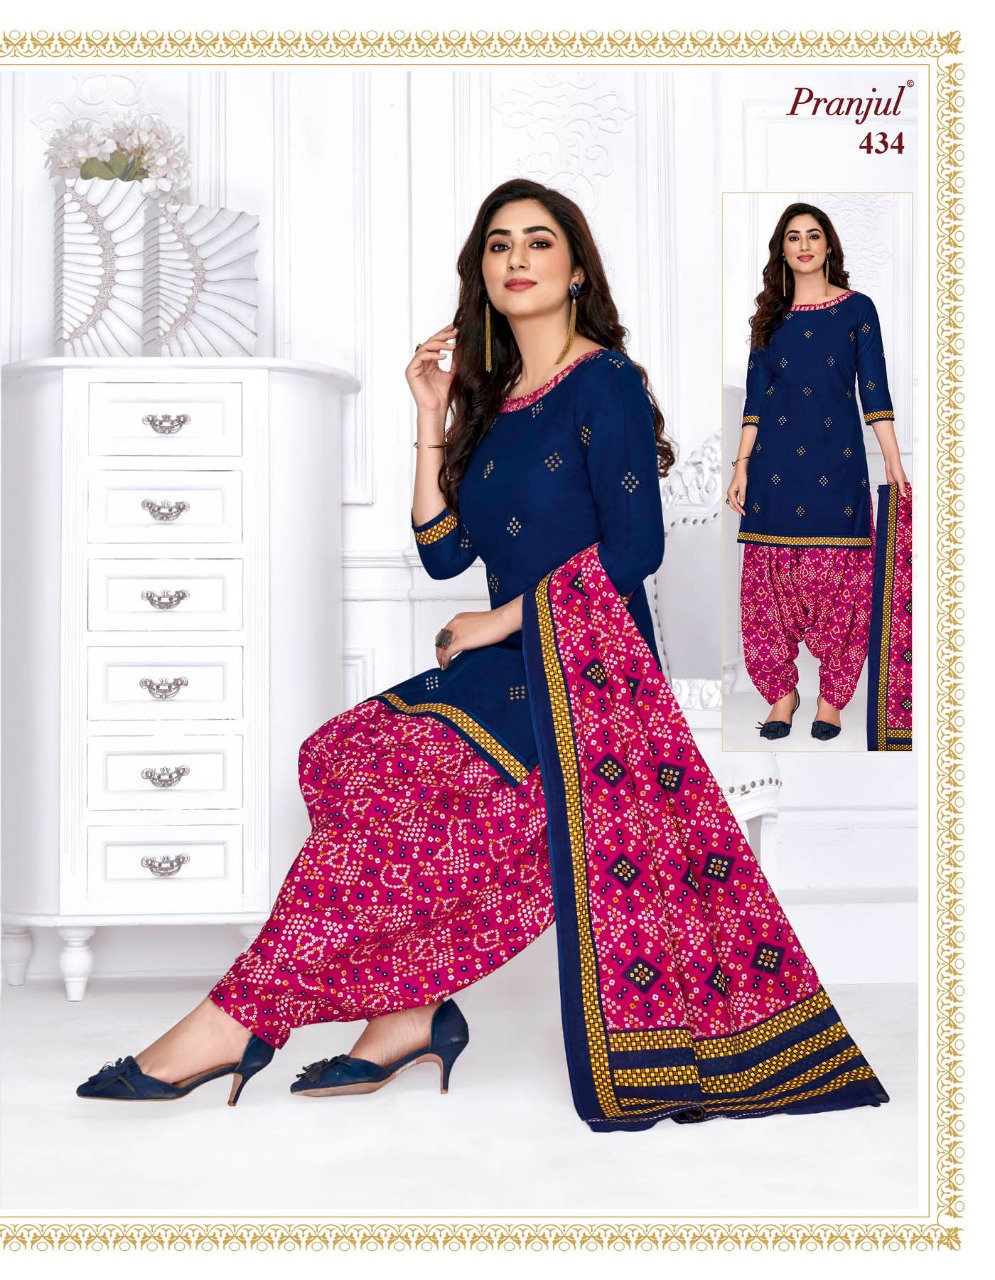 Pranjul Priyanka Vol 4 B Readymade Suit Wholesale Catalog 15 Pcs 6 - Pranjul Priyanka Vol 4 B Readymade Suit Wholesale Catalog 15 Pcs